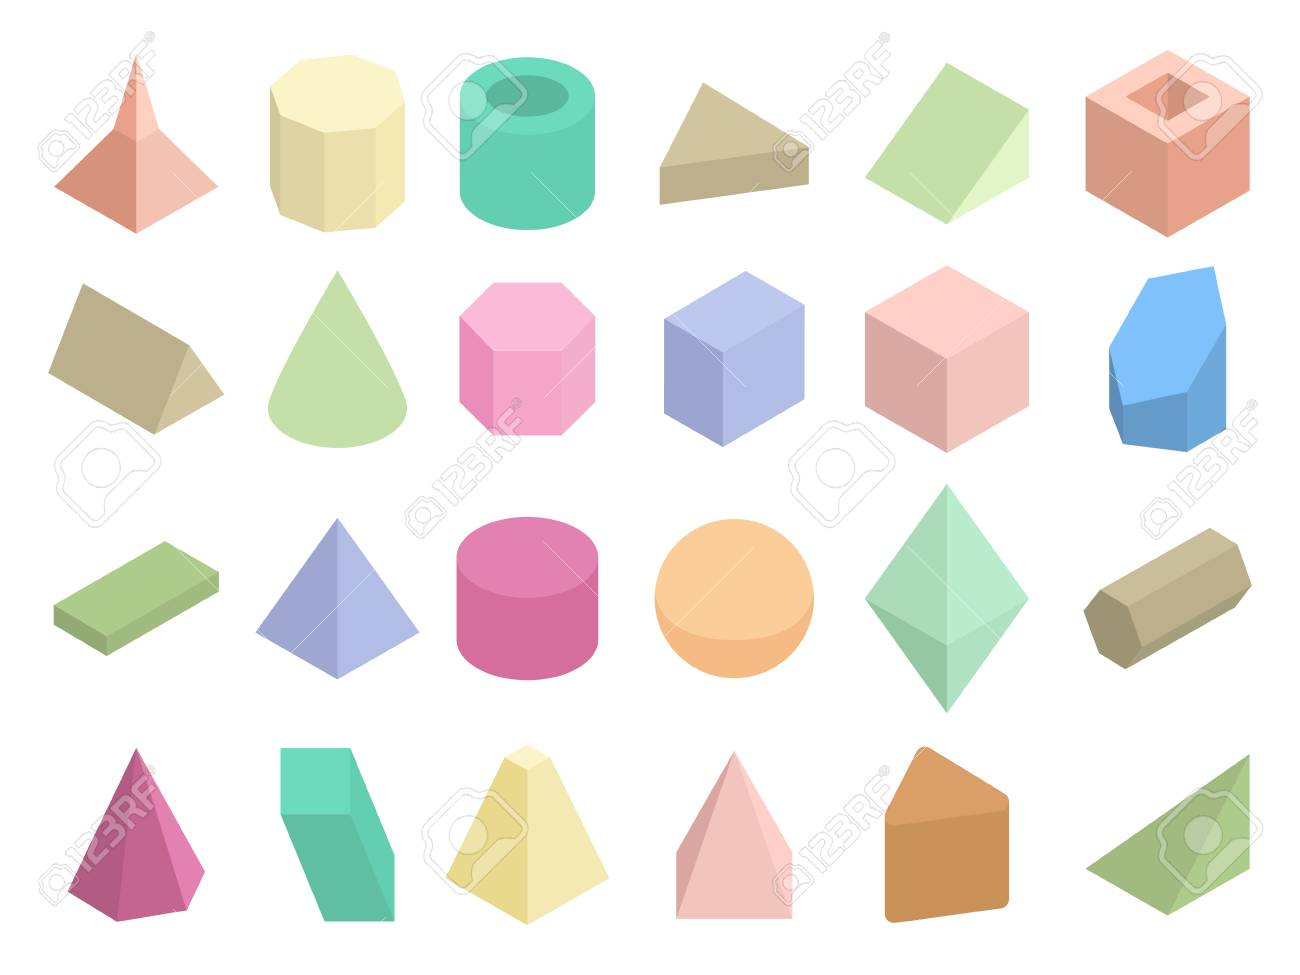 Isometric 3d Geometric Color Shapes Vector Set Isometric Figure